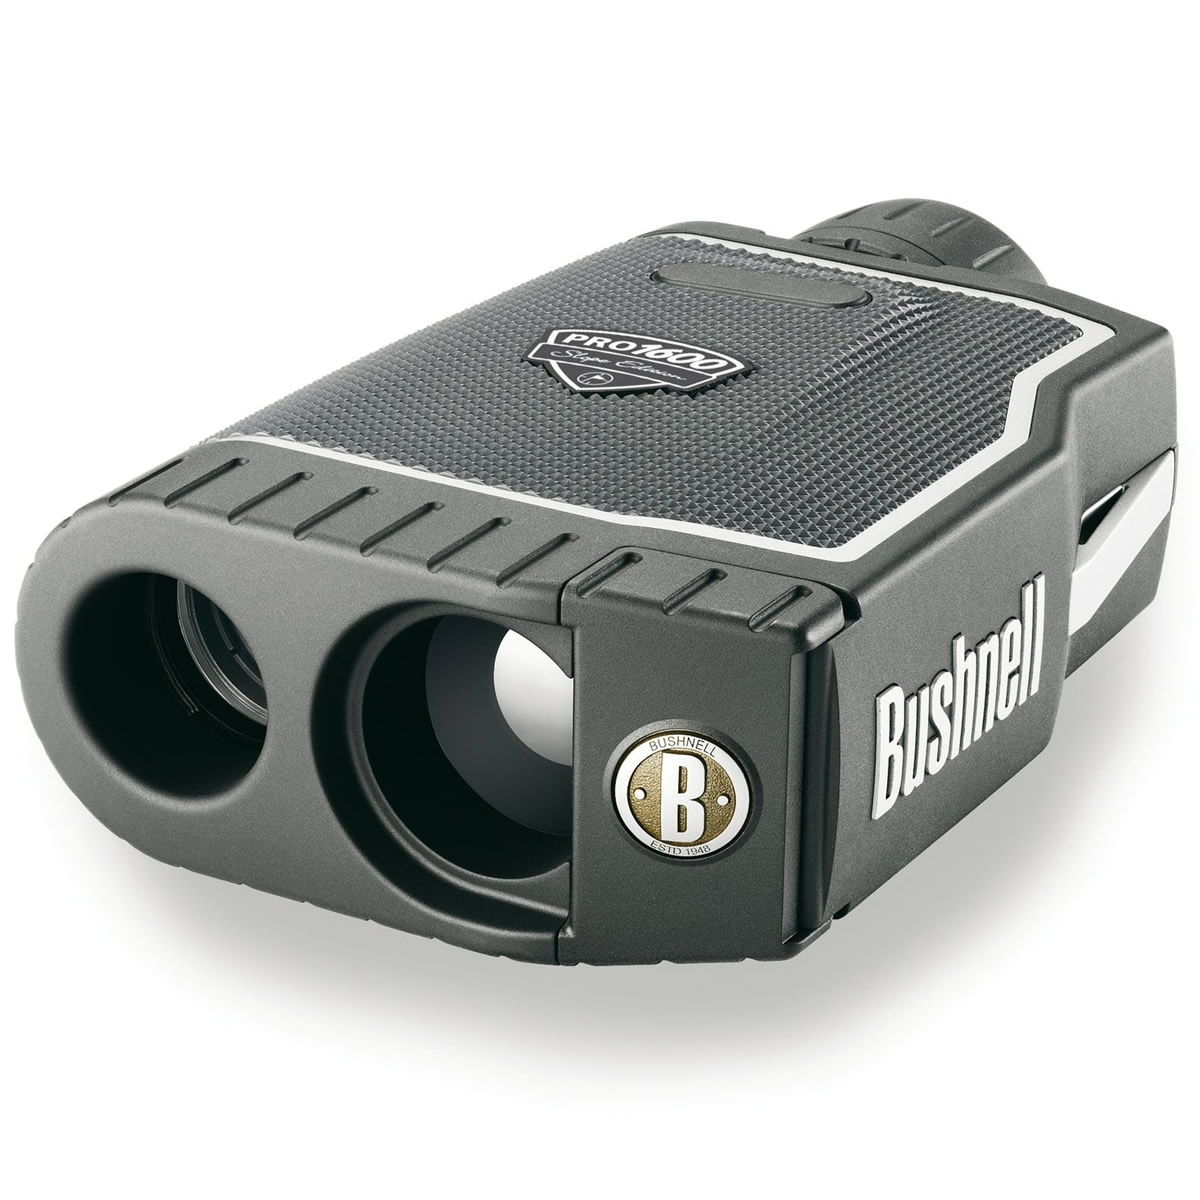 Bushnell Pro 1600 Golf Laser Rangefinder Sl?ope Edition Pinseeker - 205106 at Sears.com